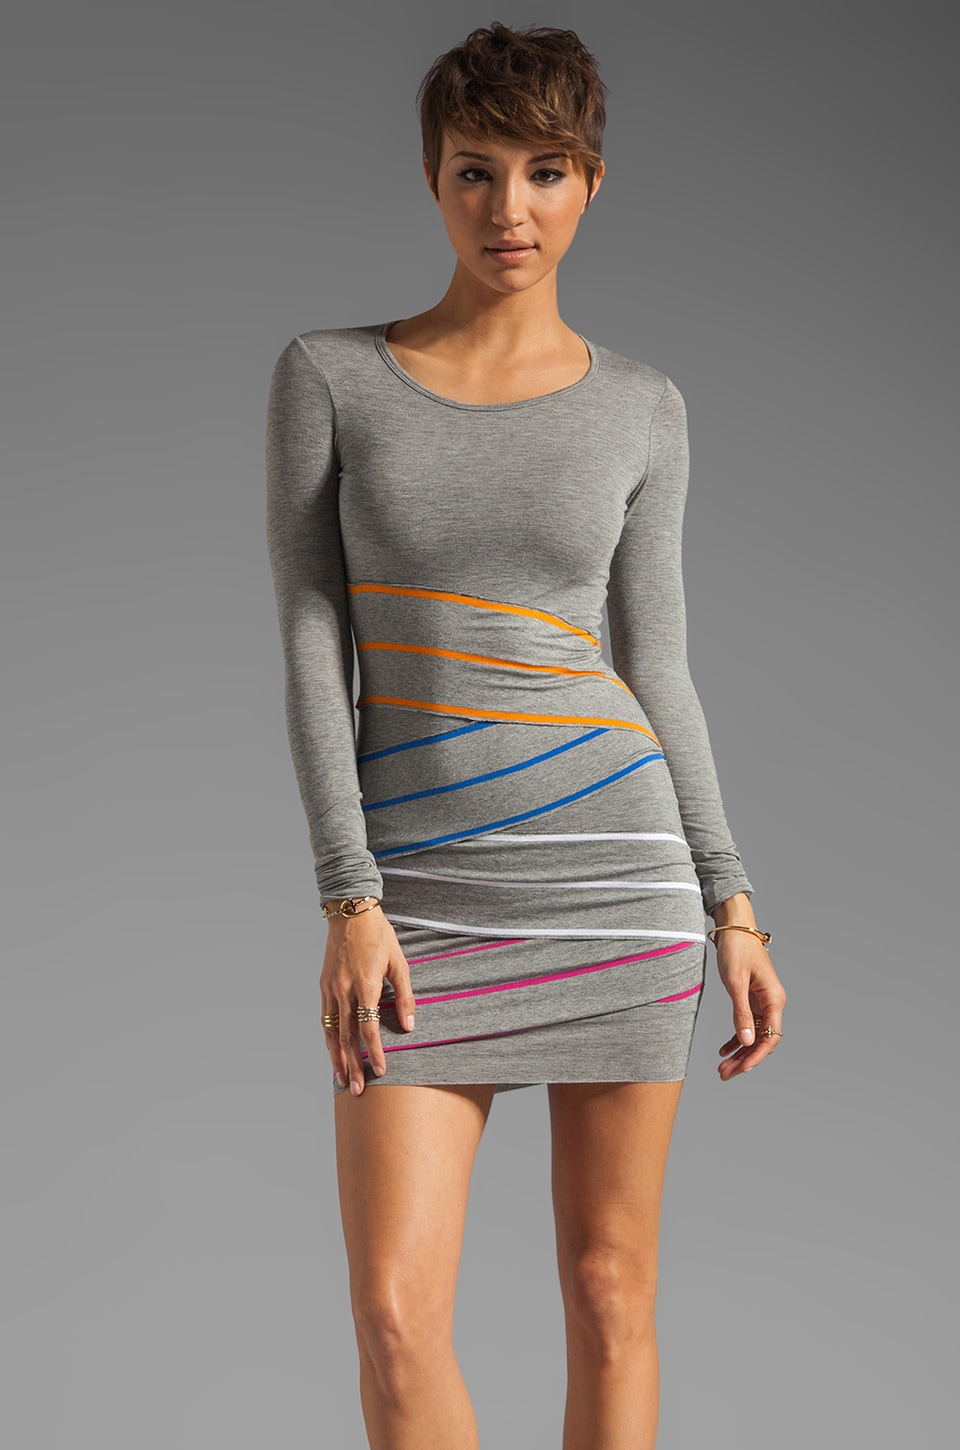 Bailey 44 Long Sleeve Triathlon Dress in Grey